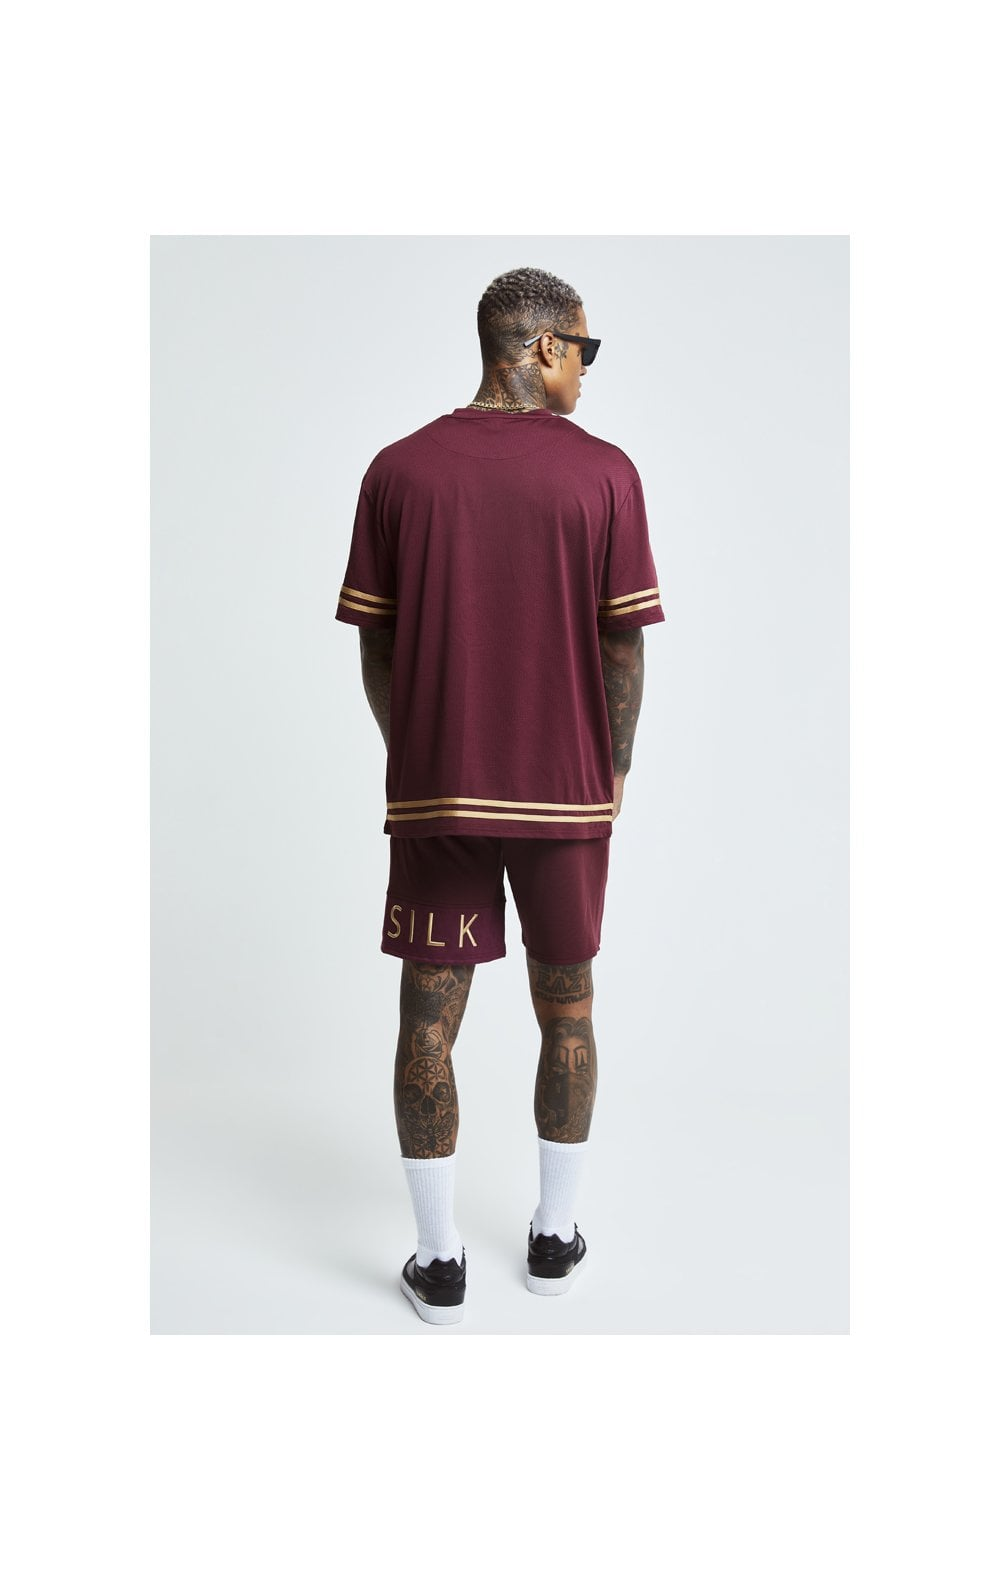 SikSilk S/S Signature Oversize Essentials Tee - Burgundy & Gold (3)